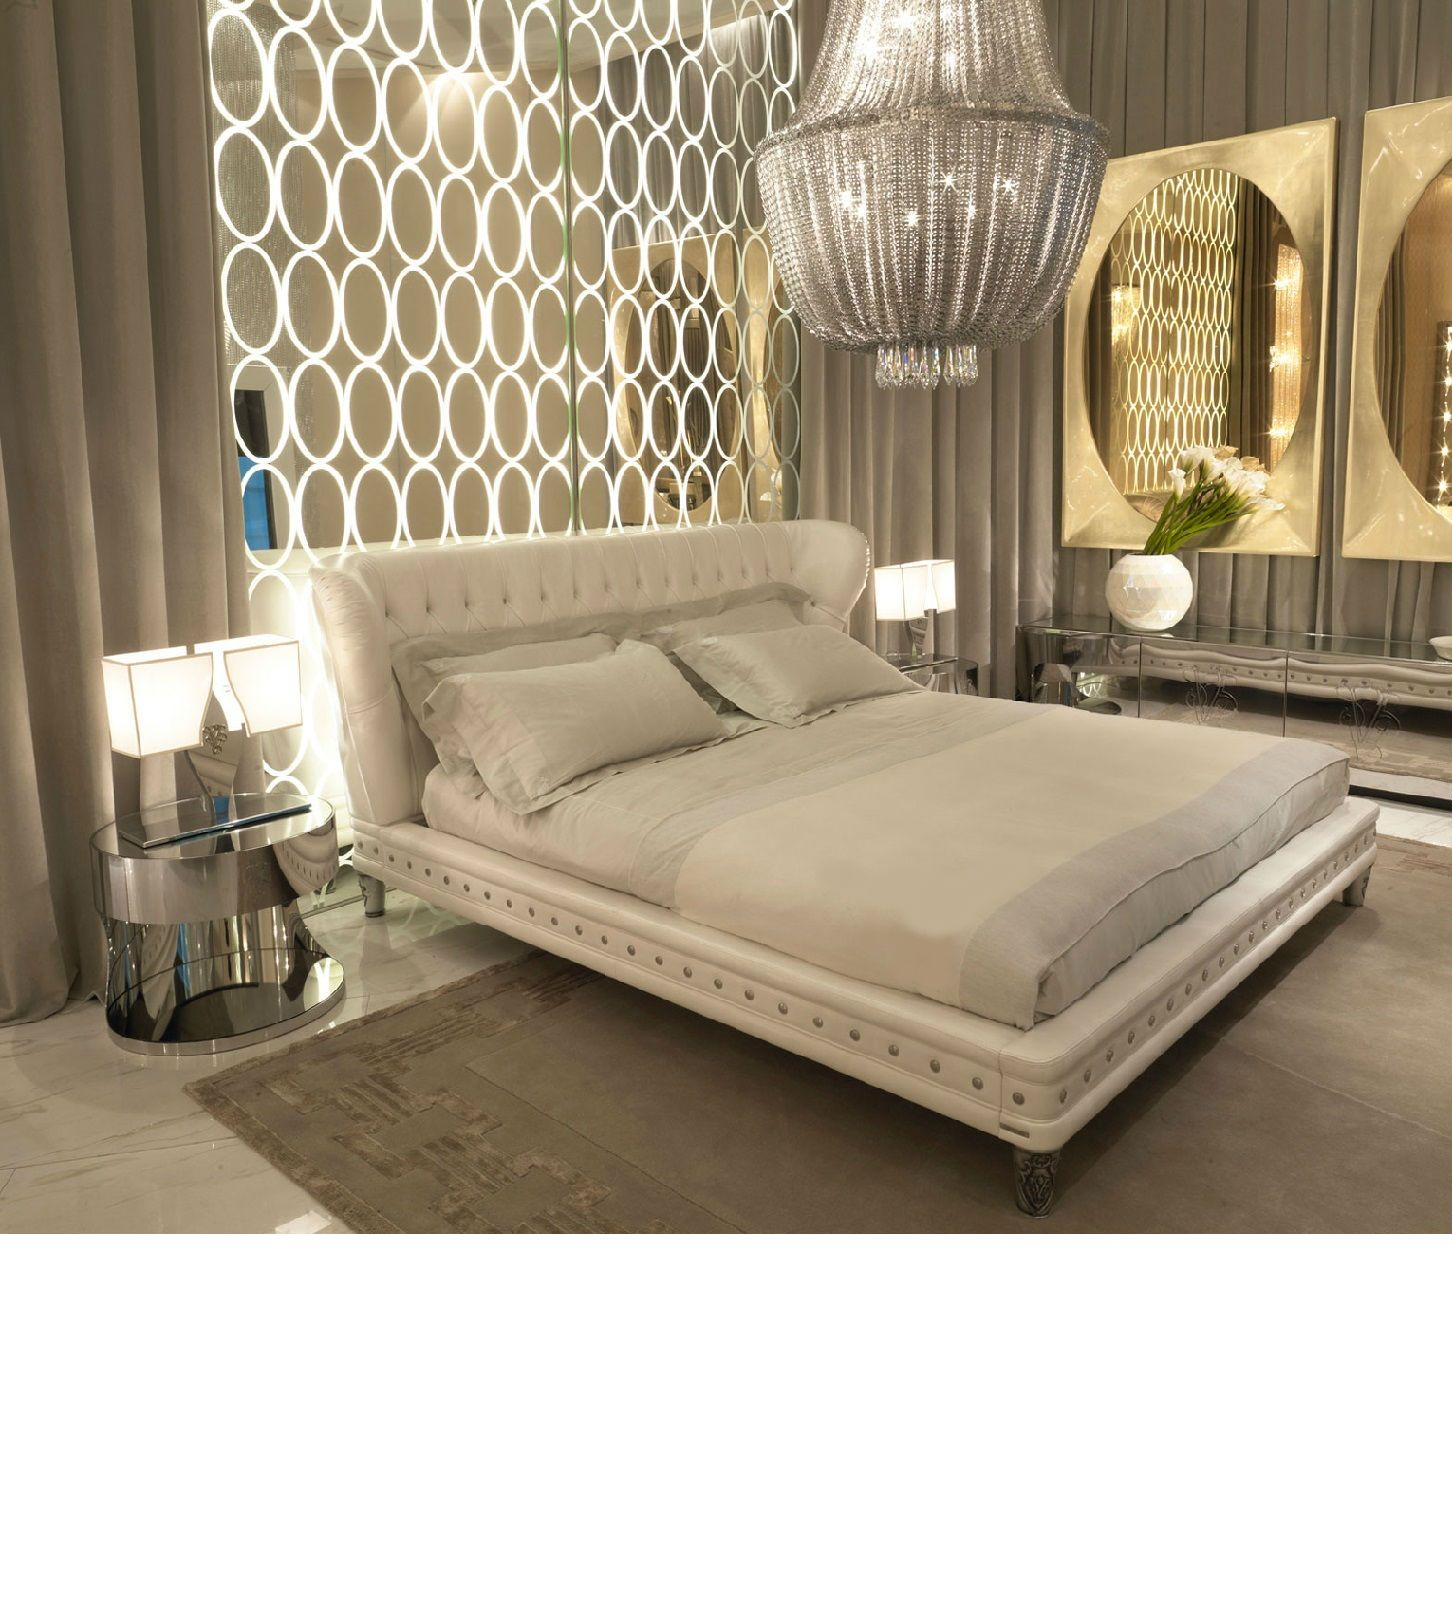 Luxury Bedroom Interior Design, Inspiring 5 Star Hotel